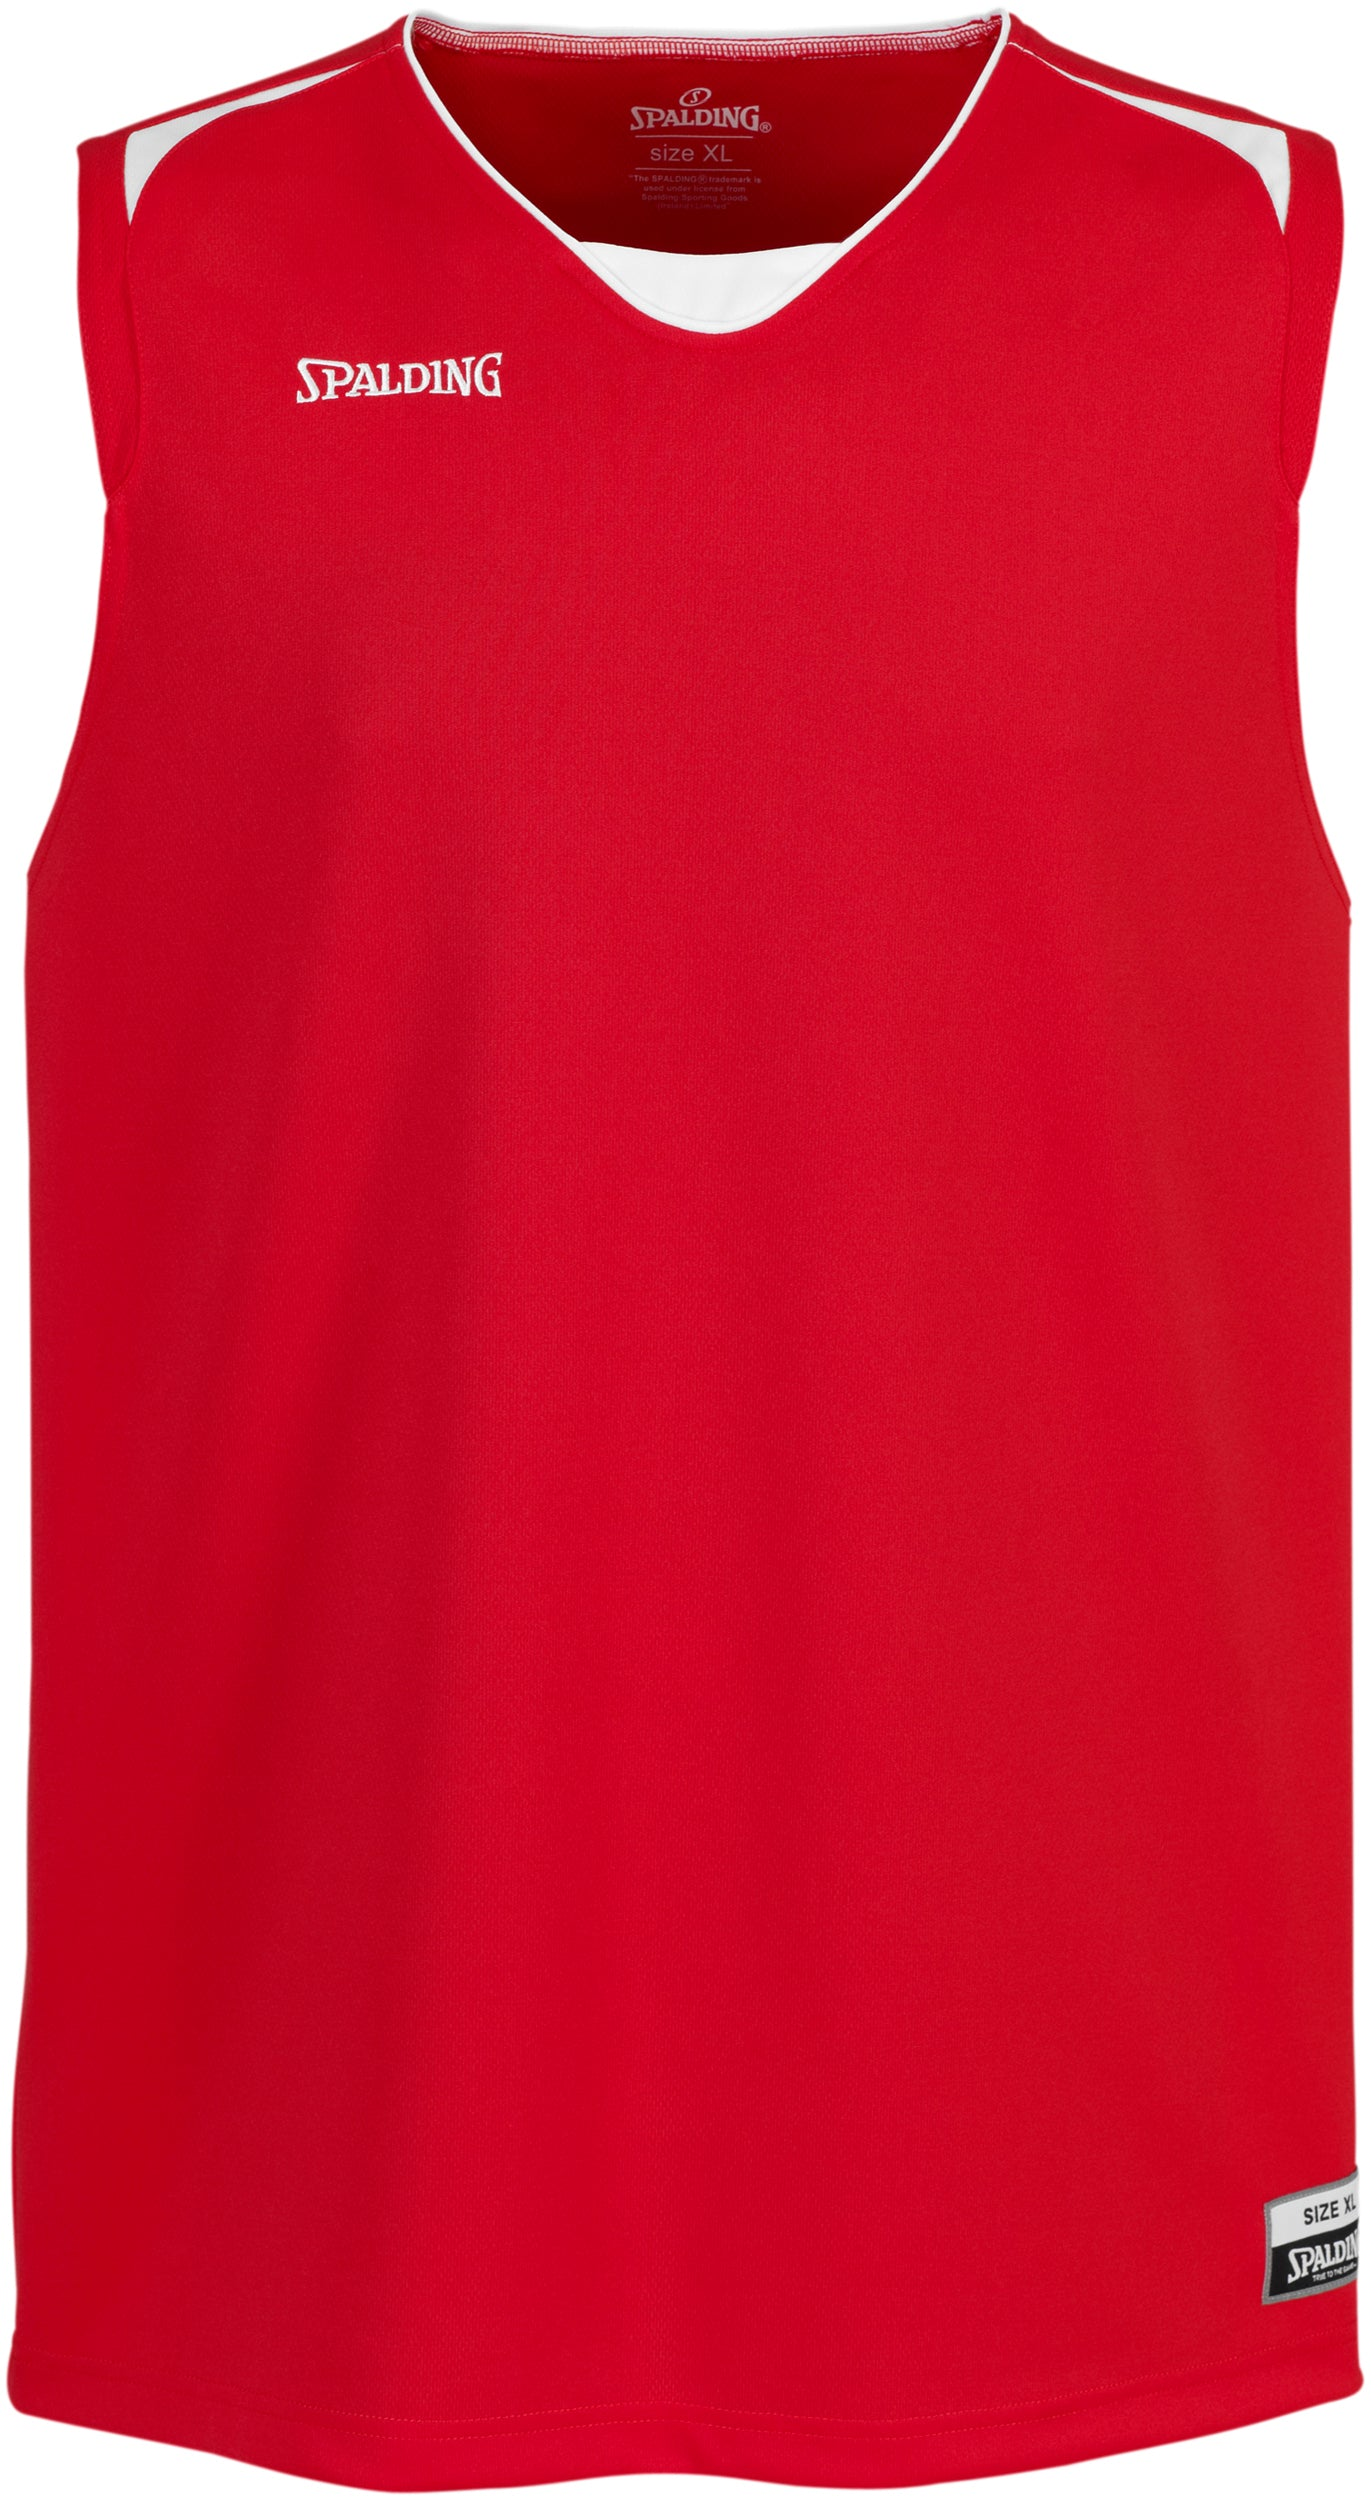 Spalding Unisex/All Attack Jersey - Red/White SP-3002115-01